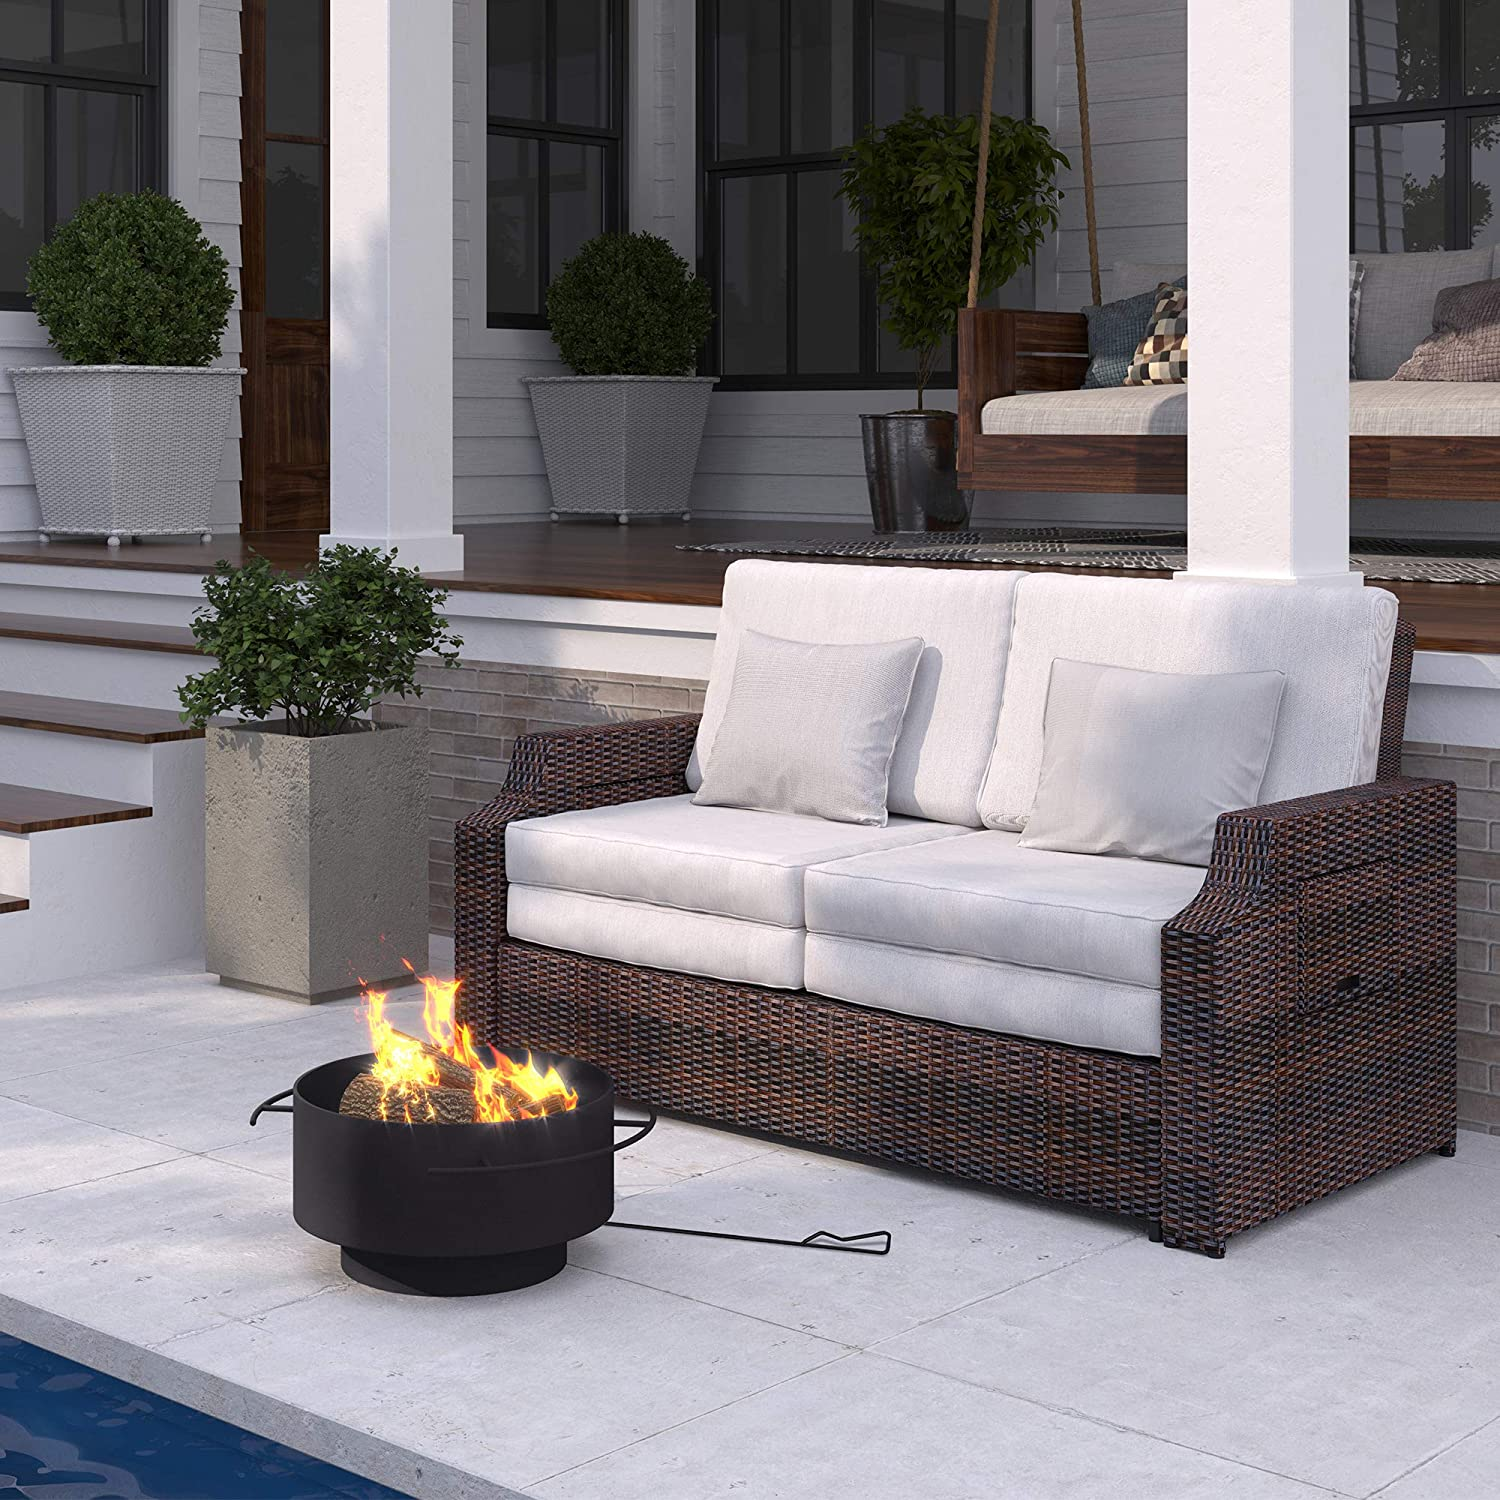 Amazon Com Martha Stewart Bedford Wood Burning 24 Round Fire Pit Dark Charcoal Garden Outdoor